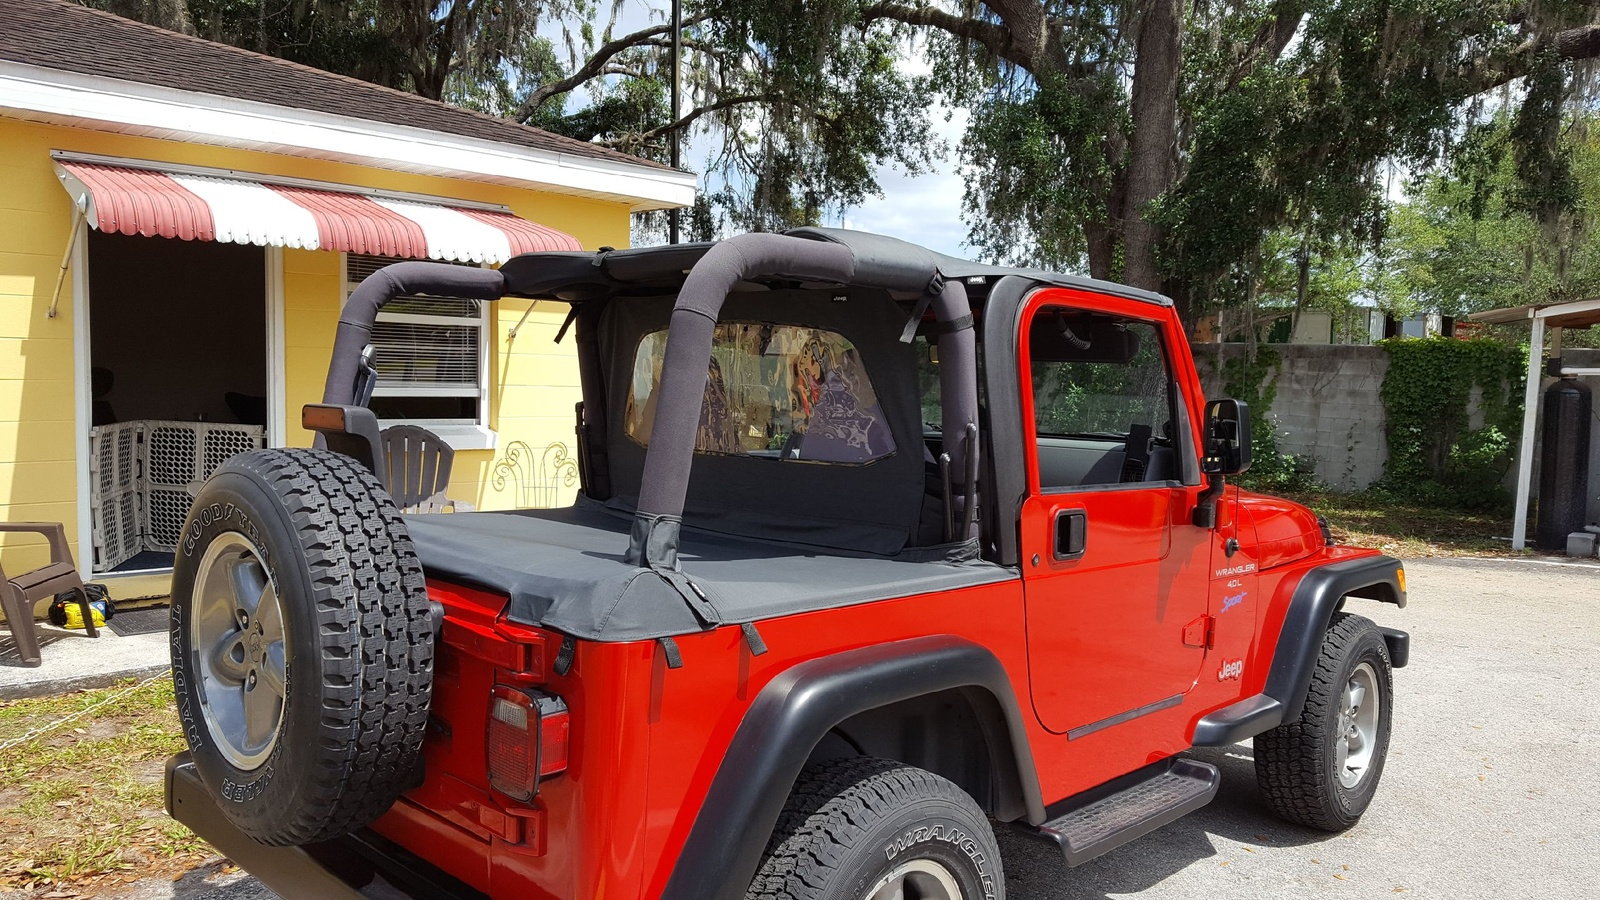 Jeep Wrangler Questions   CAN I REPLACE FULL DOORS FOR HALF DOORS ON A TJ?    CarGurus